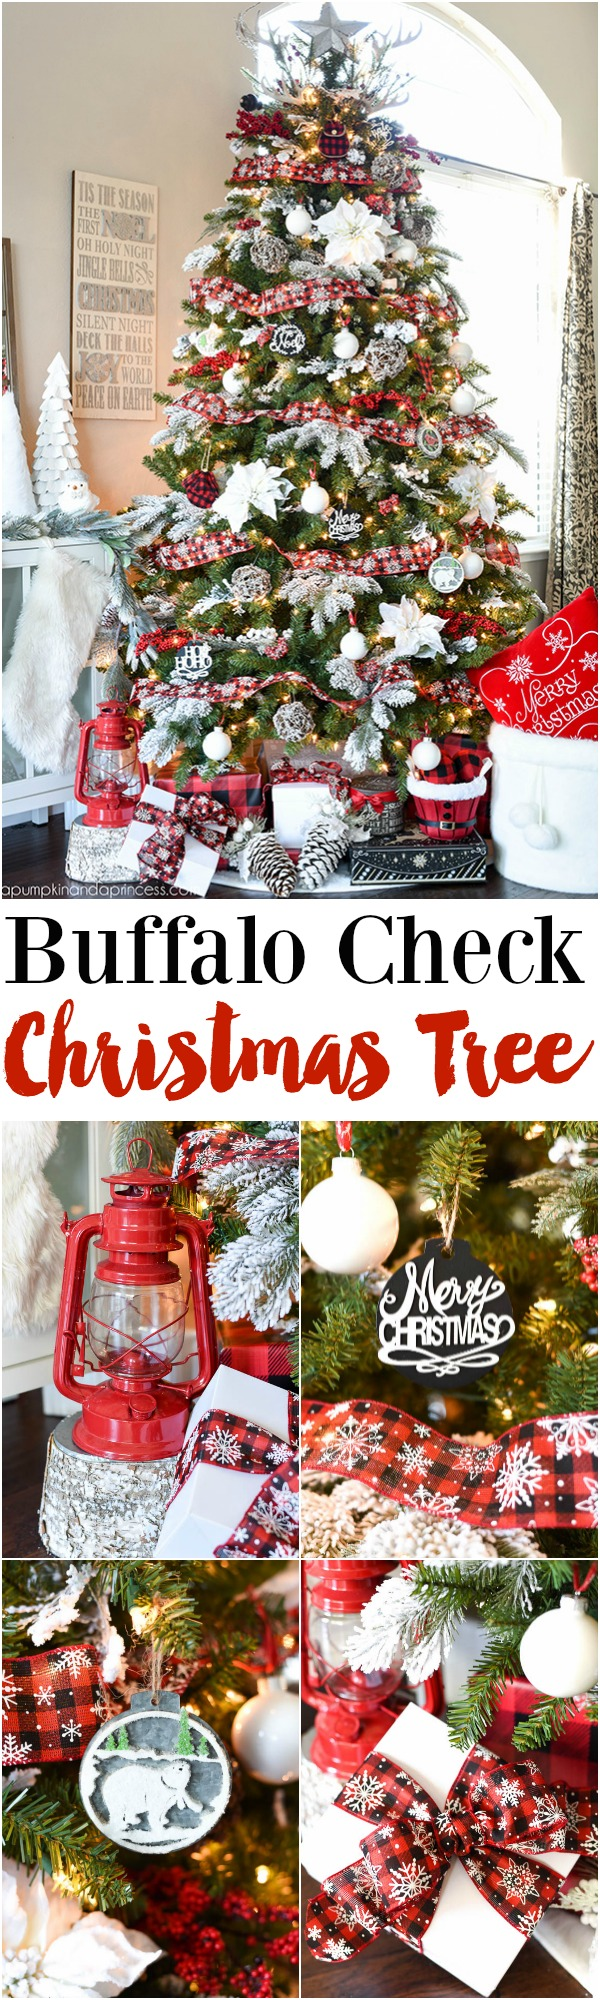 buffalo check christmas tree michaels dream tree